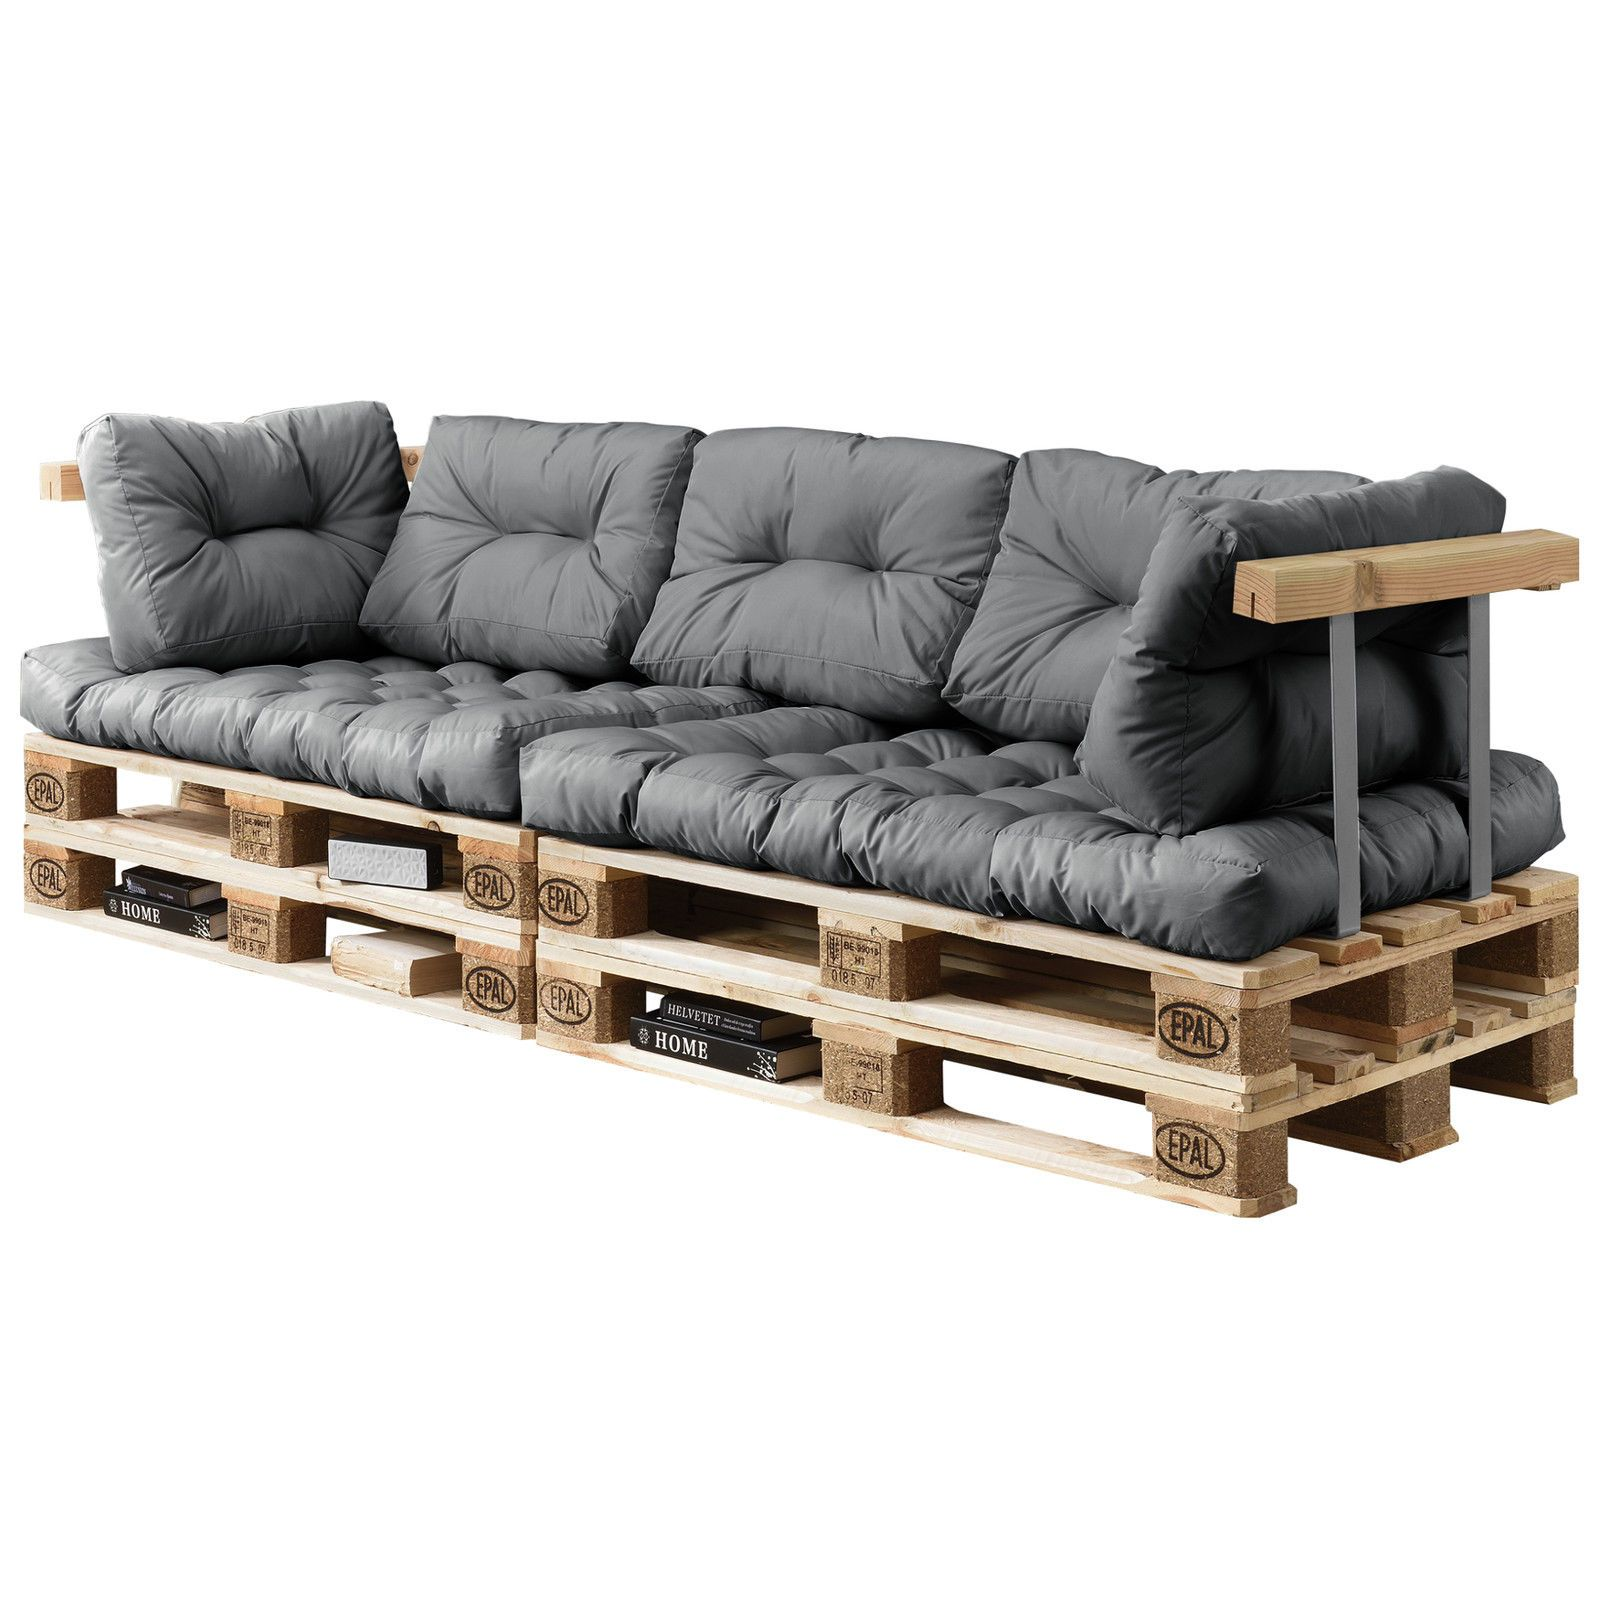 euro paletten sofa 7x sitz r ckenkissen hell grau kissen auflage in garten. Black Bedroom Furniture Sets. Home Design Ideas